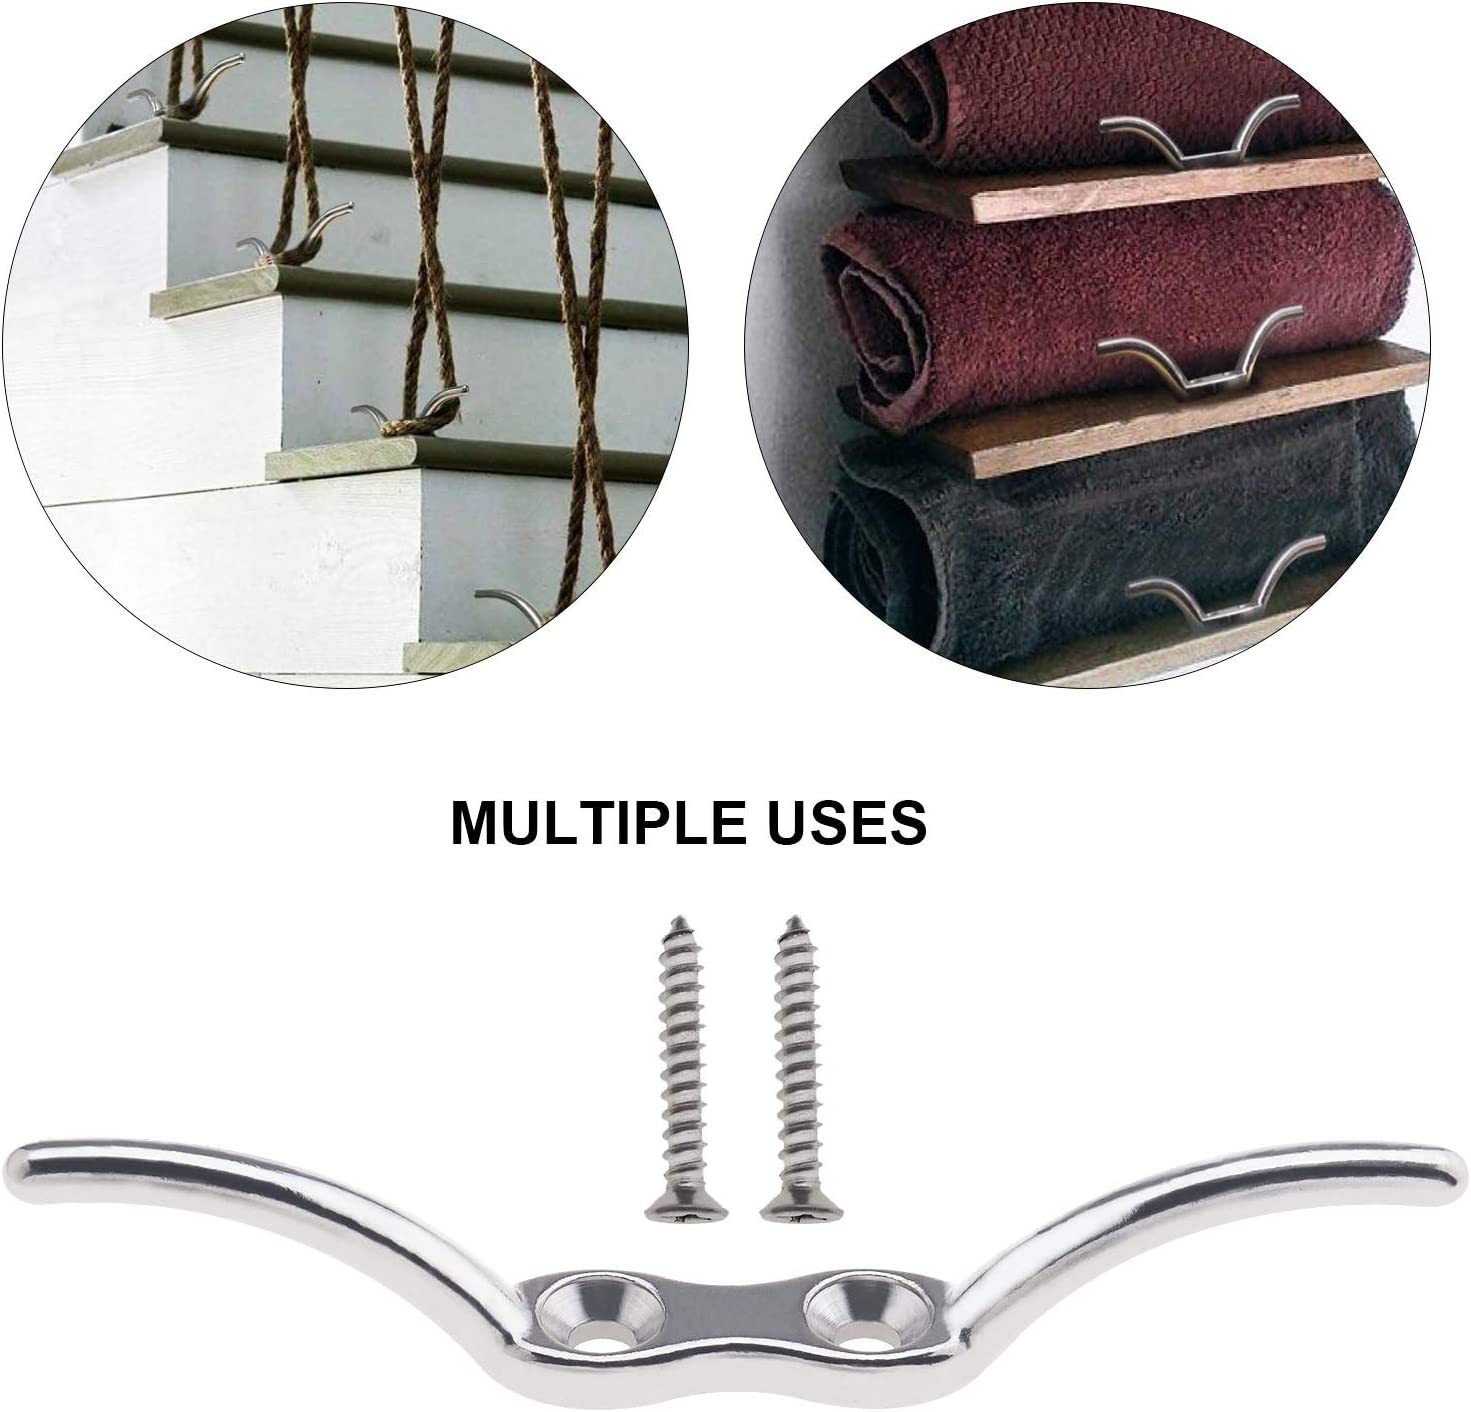 4 Pcs 6 Inches Boat Rope Cleats 316 Stainless Steel for Boats Accessories Boat Securing Tie Down Included Mounting 8 Screws